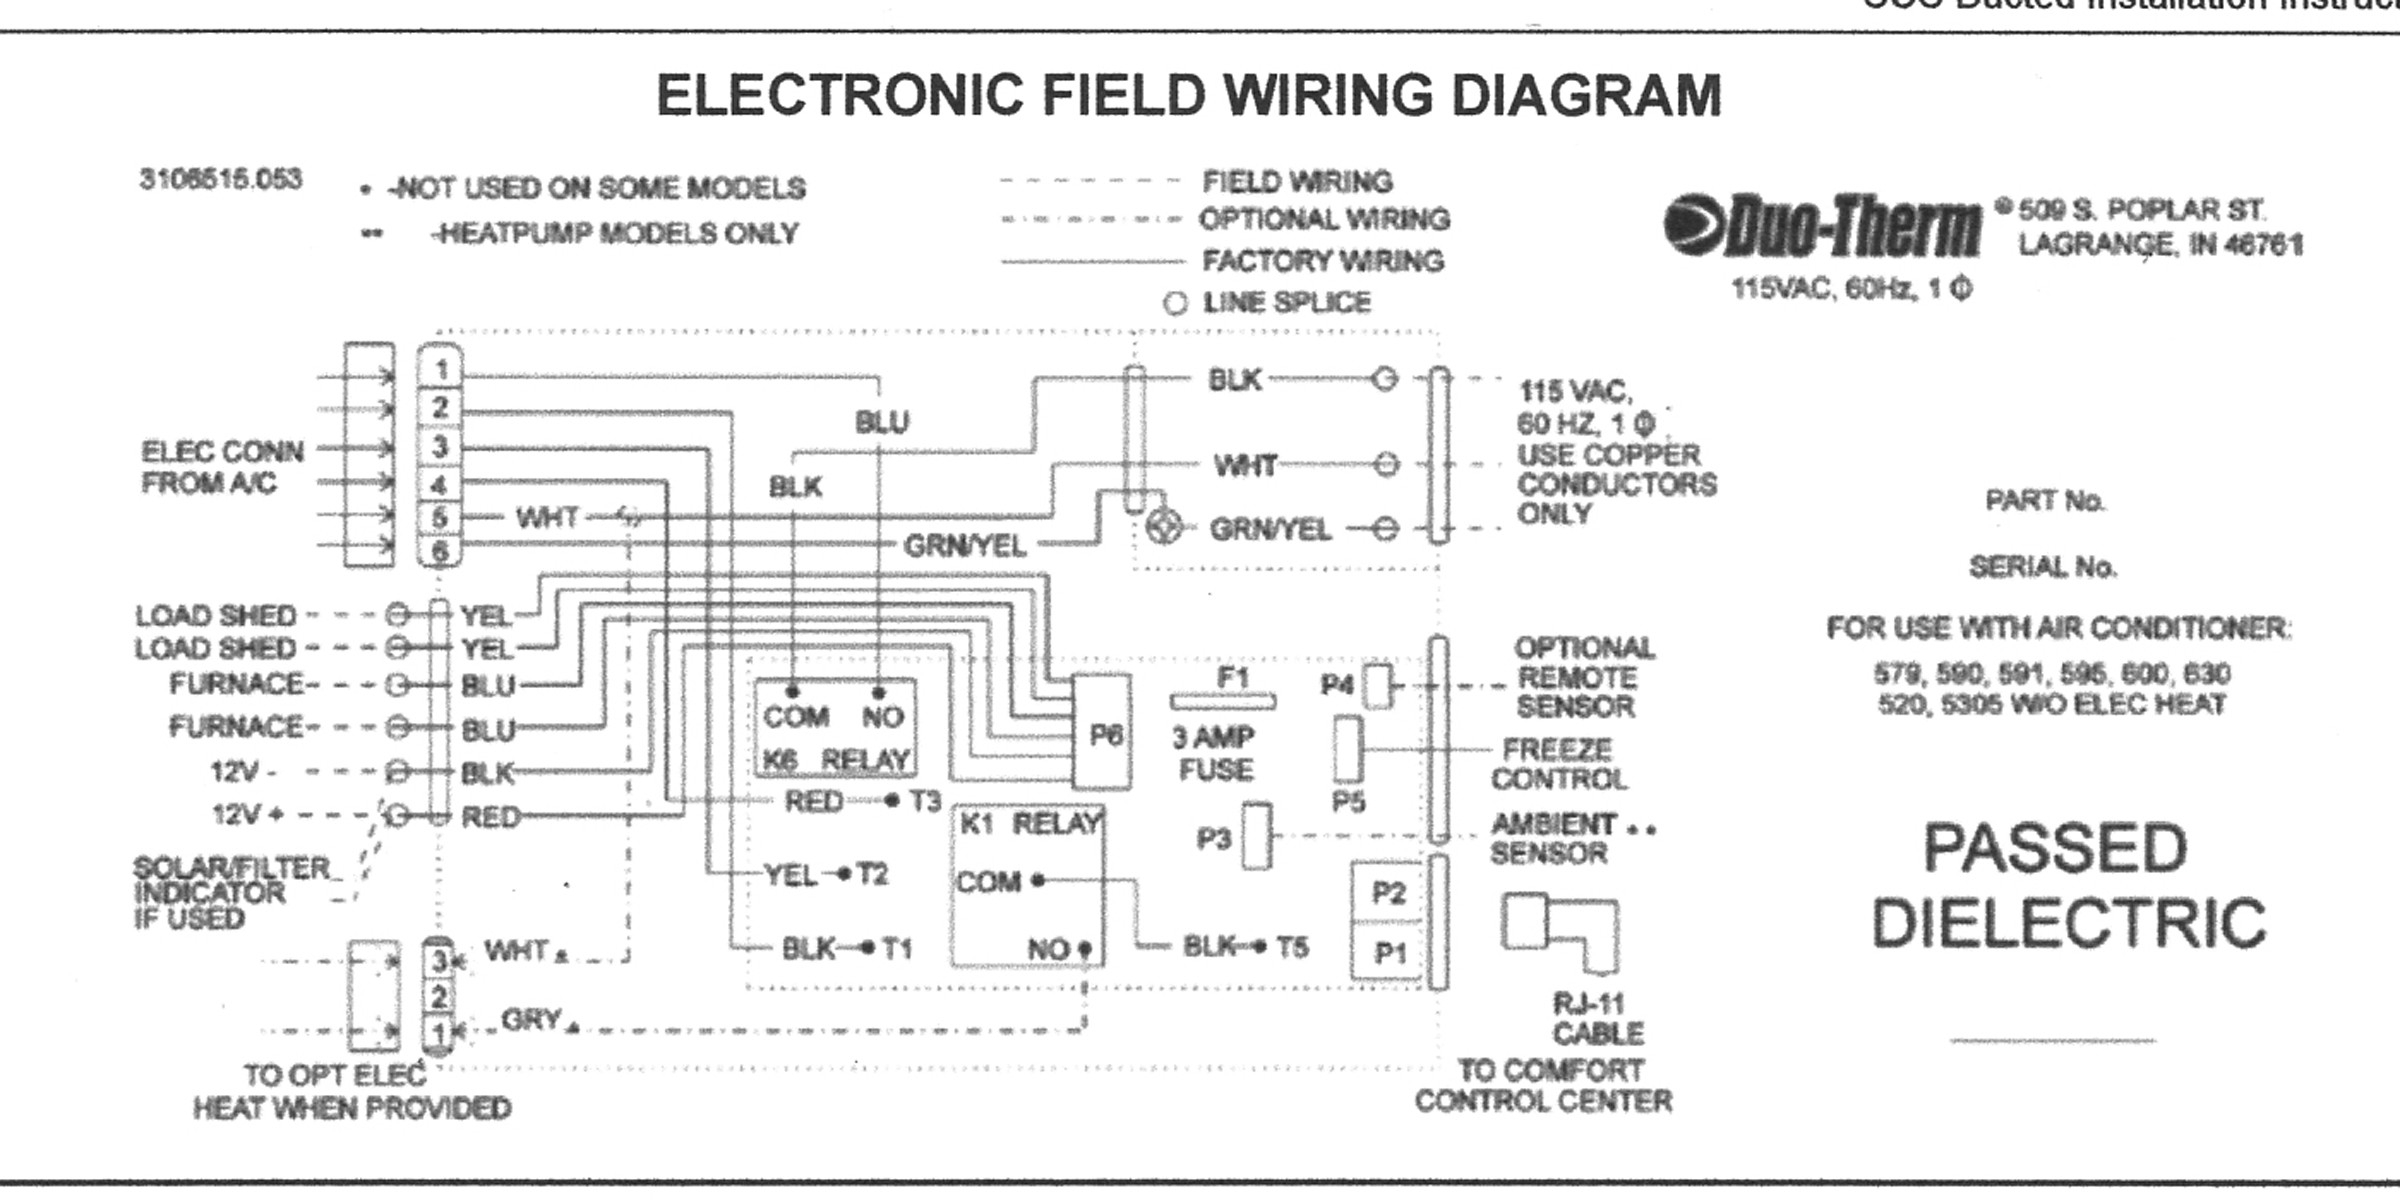 duo therm thermostat wiring diagram Collection-Wiring A Ac thermostat Diagram New Duo therm thermostat Wiring Diagram and Suburban Rv Furnace Wiring 8-d